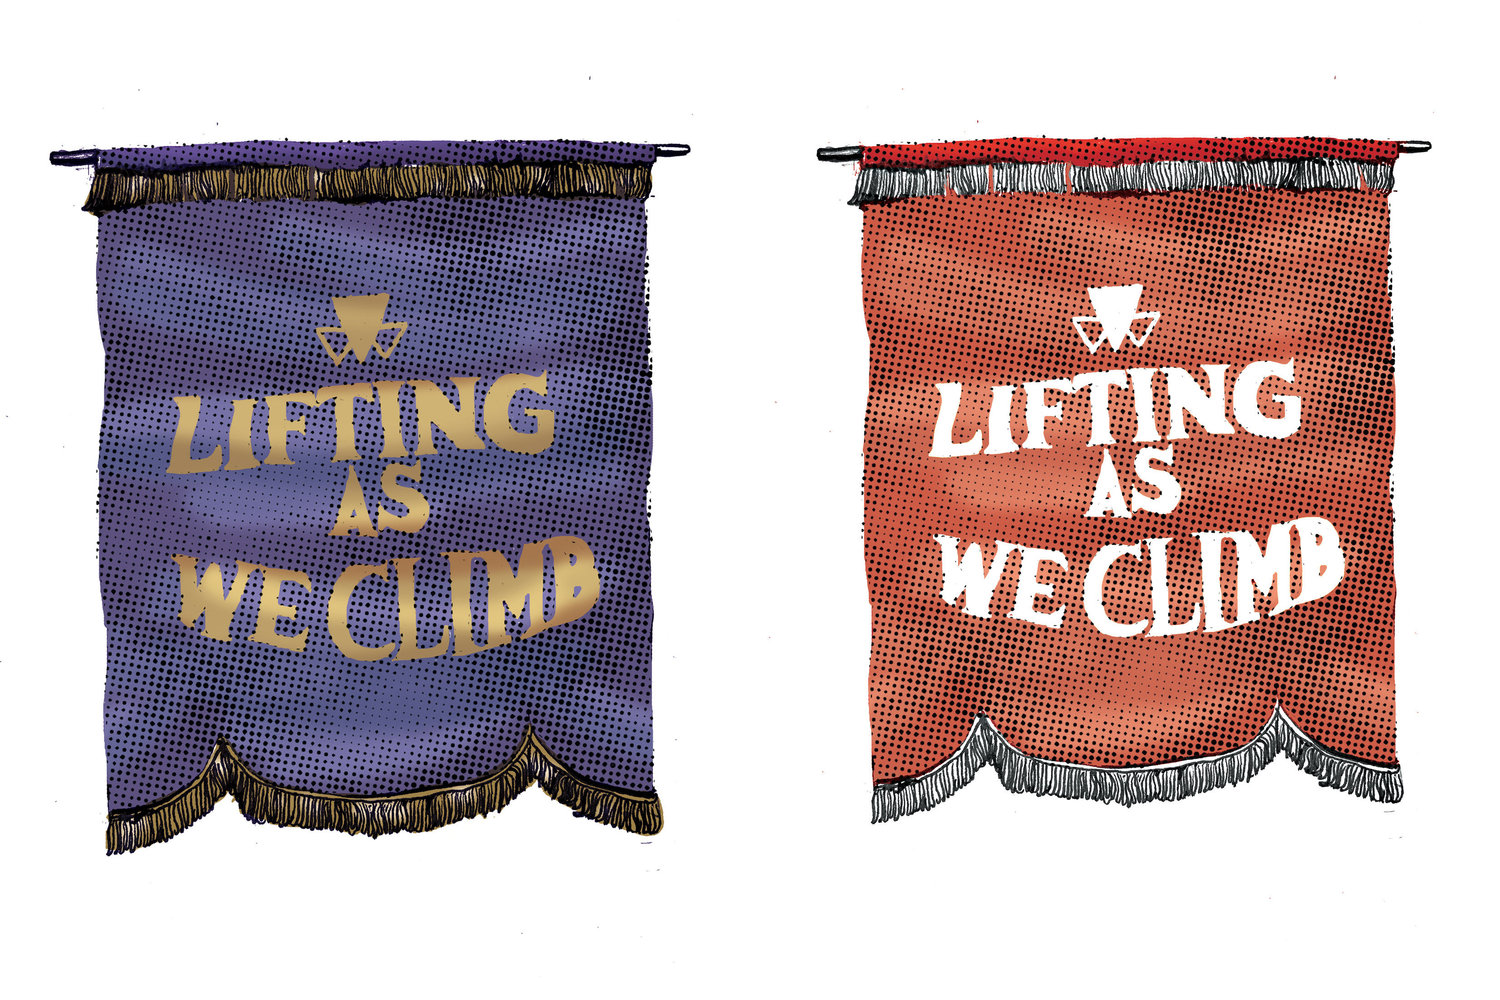 Candice Davis, Lifting As We Climb (detail), 2020, textile reproductions